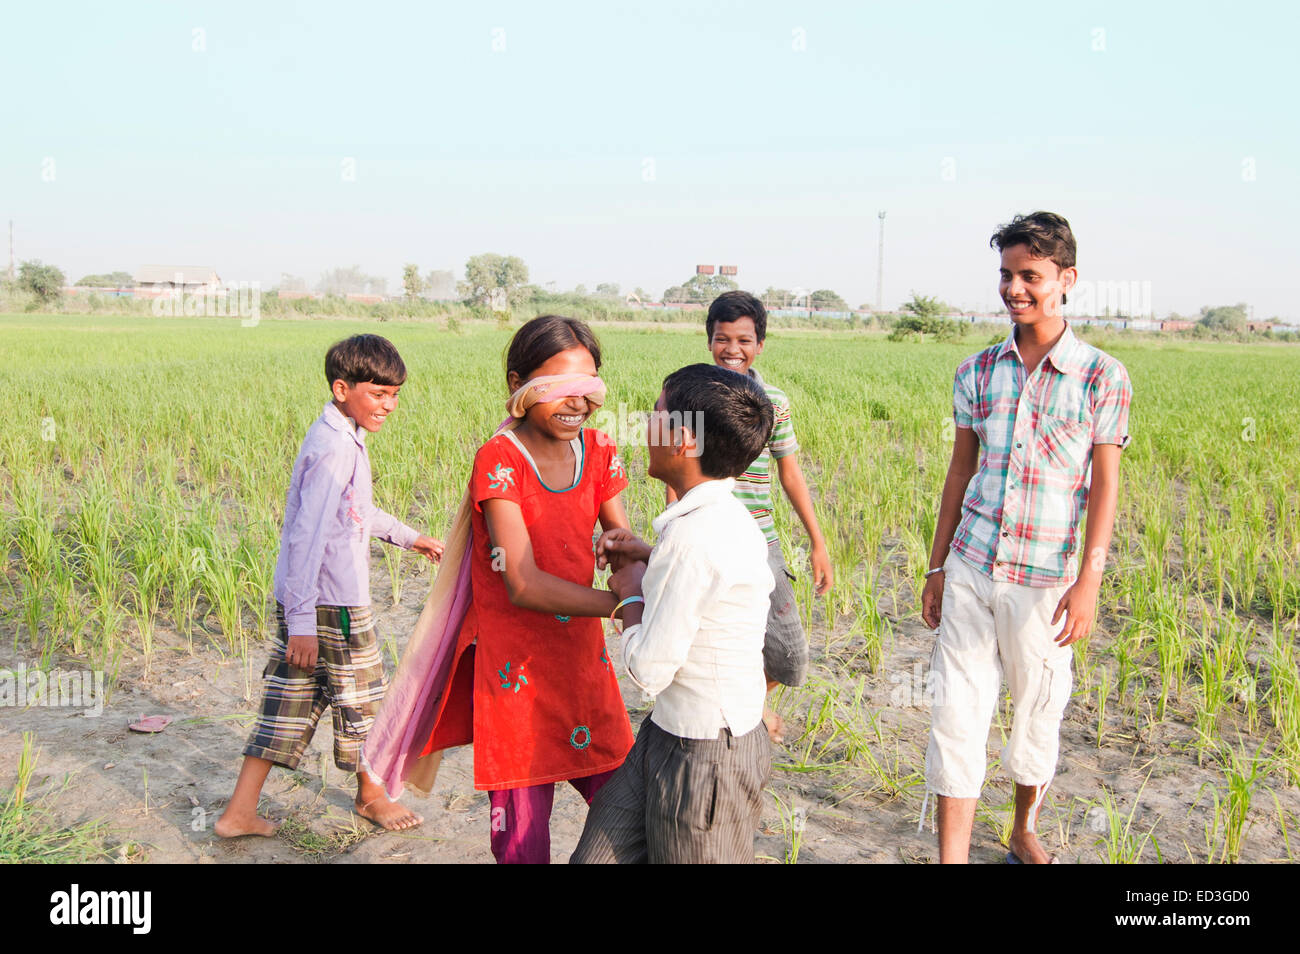 Hide And Seek Kids Indian Rural Children Farm Playing Hide And Seek Stock Photo